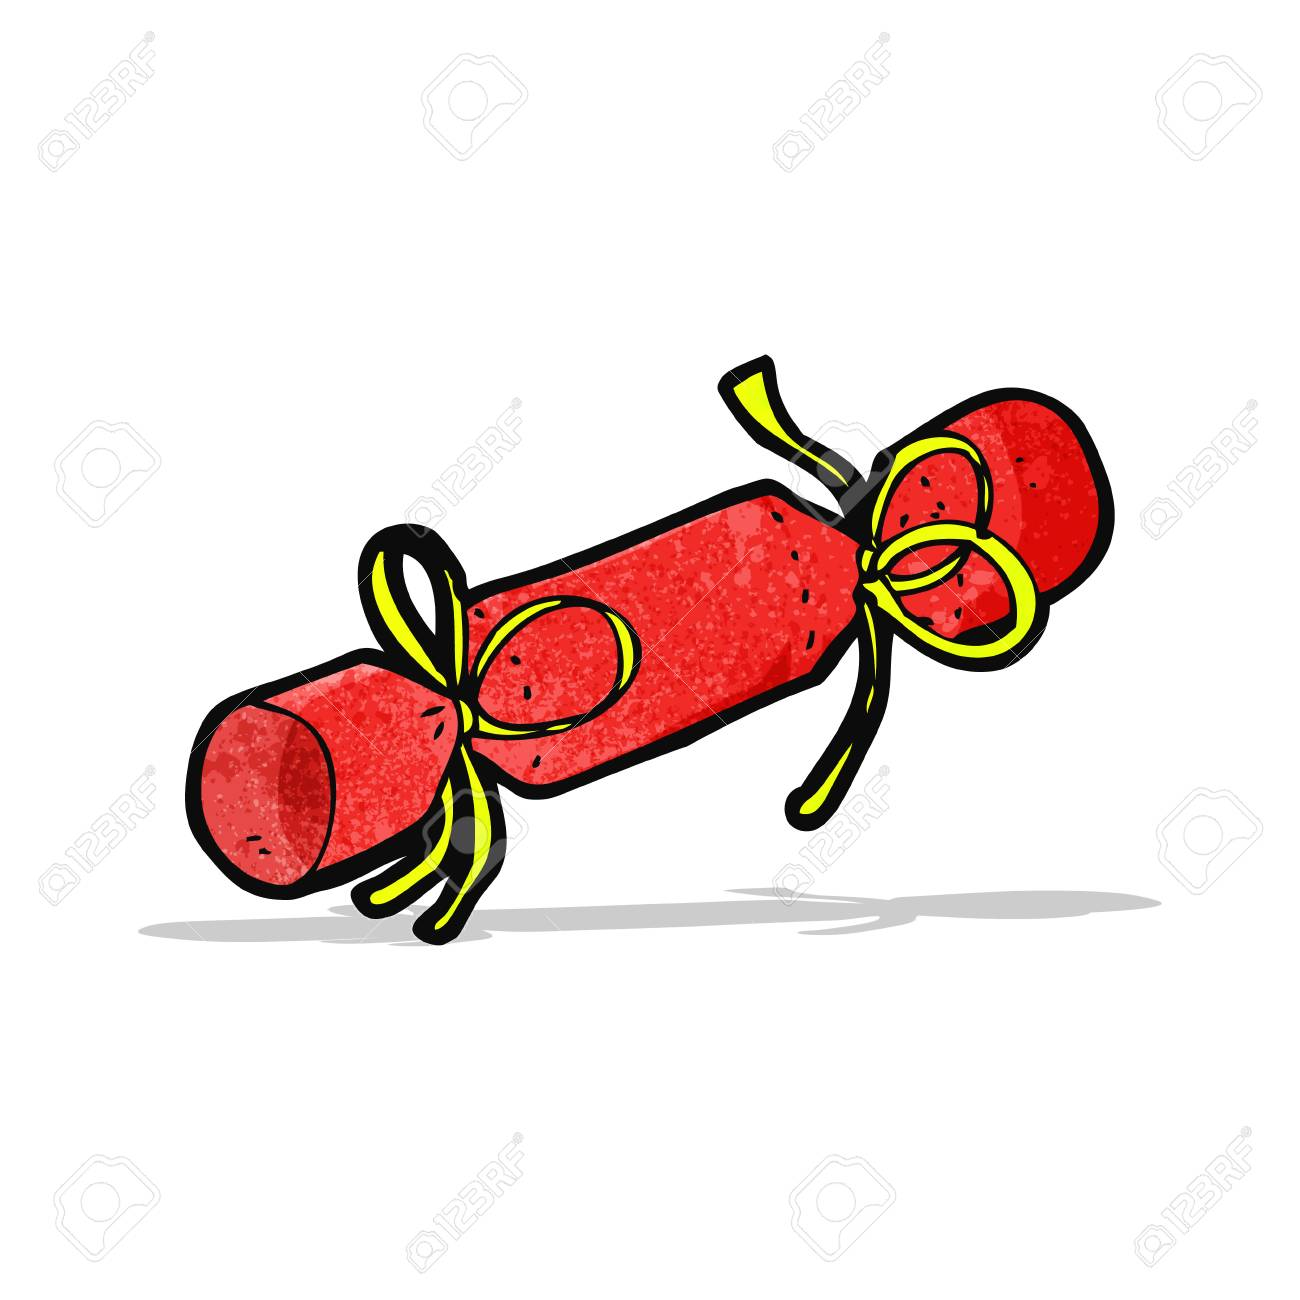 Christmas Cracker Vector.Christmas Cracker Cartoon